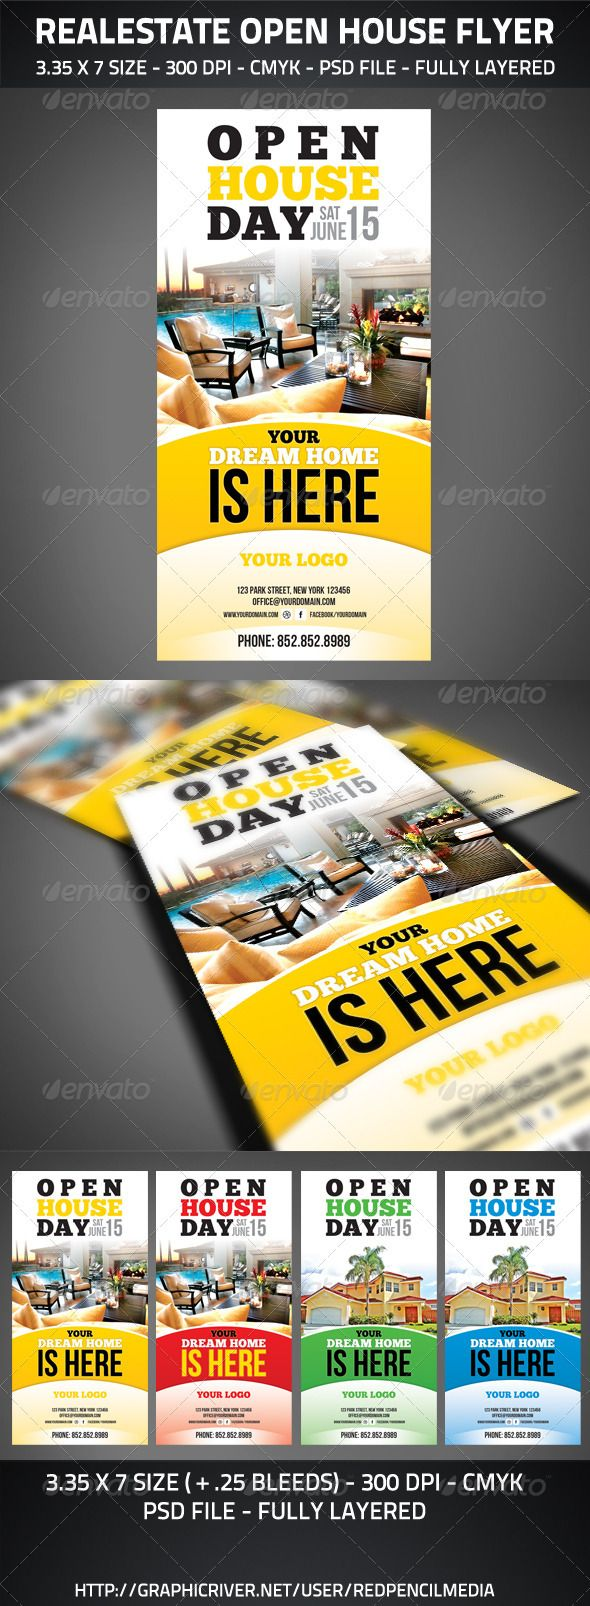 realestate Open House Invitation Postcard – Real Estate Open House Flyer Template